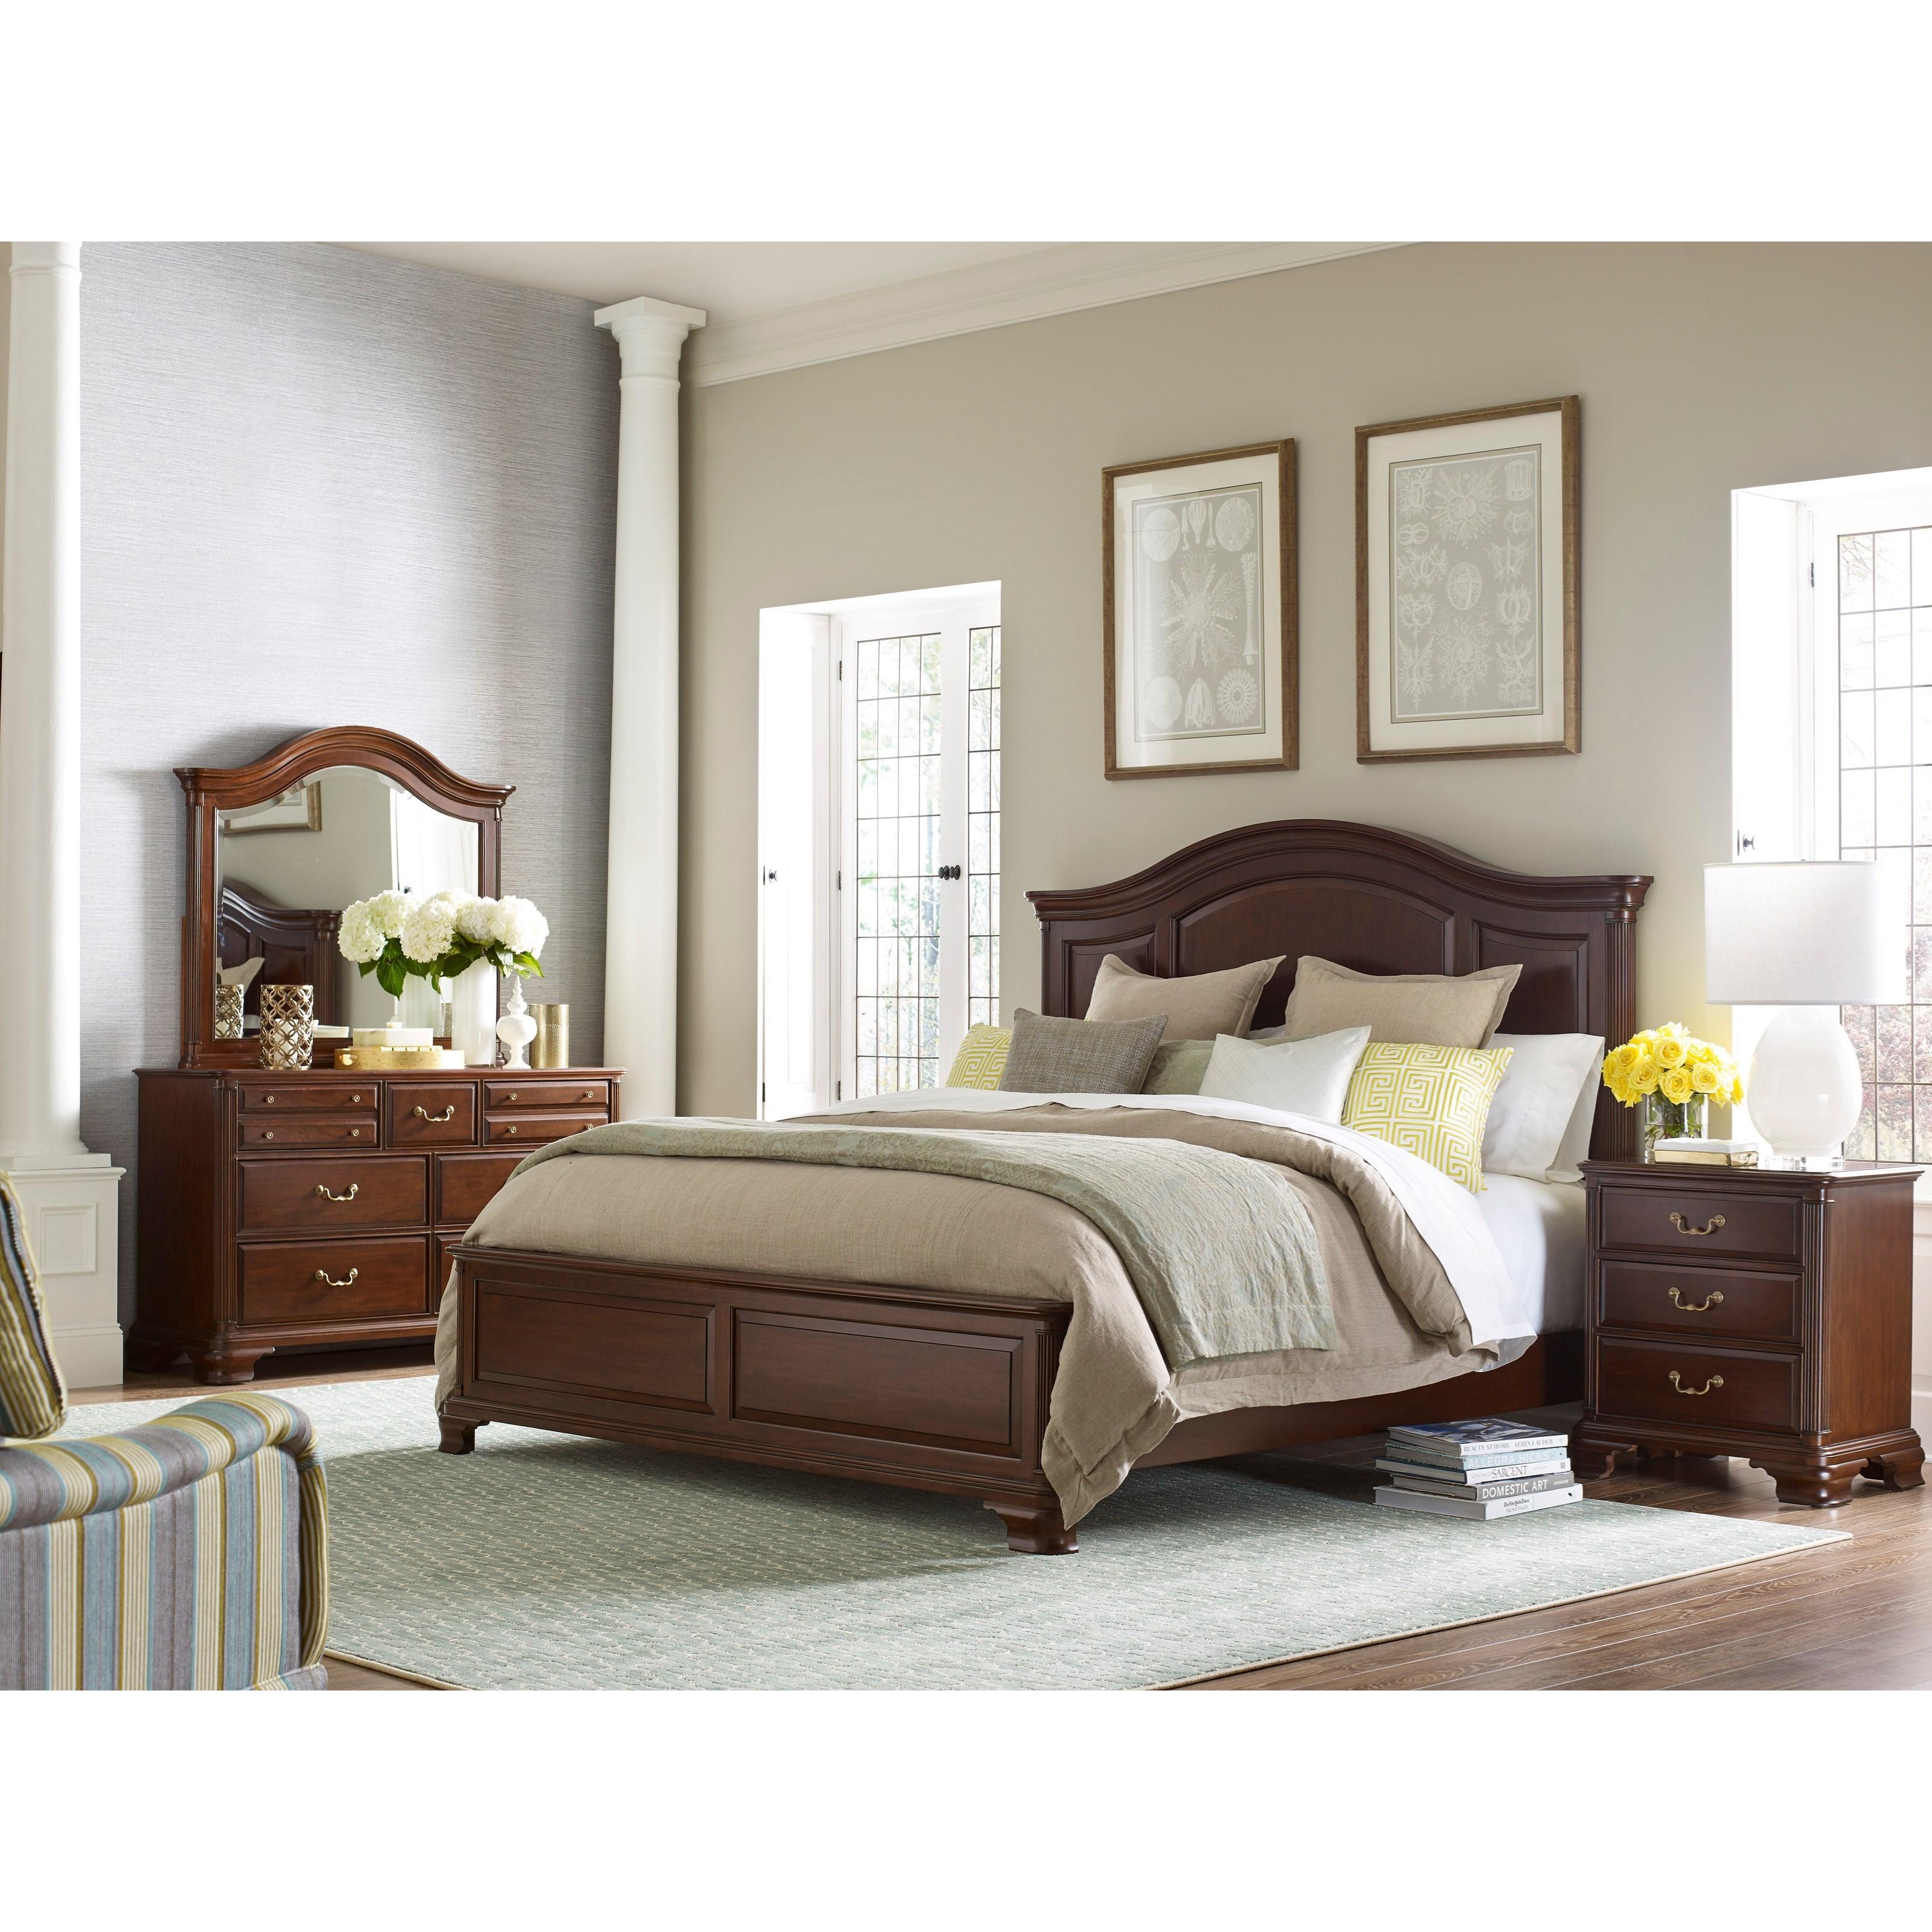 Hadleigh King Bedroom Group by Kincaid Furniture at Northeast Factory Direct